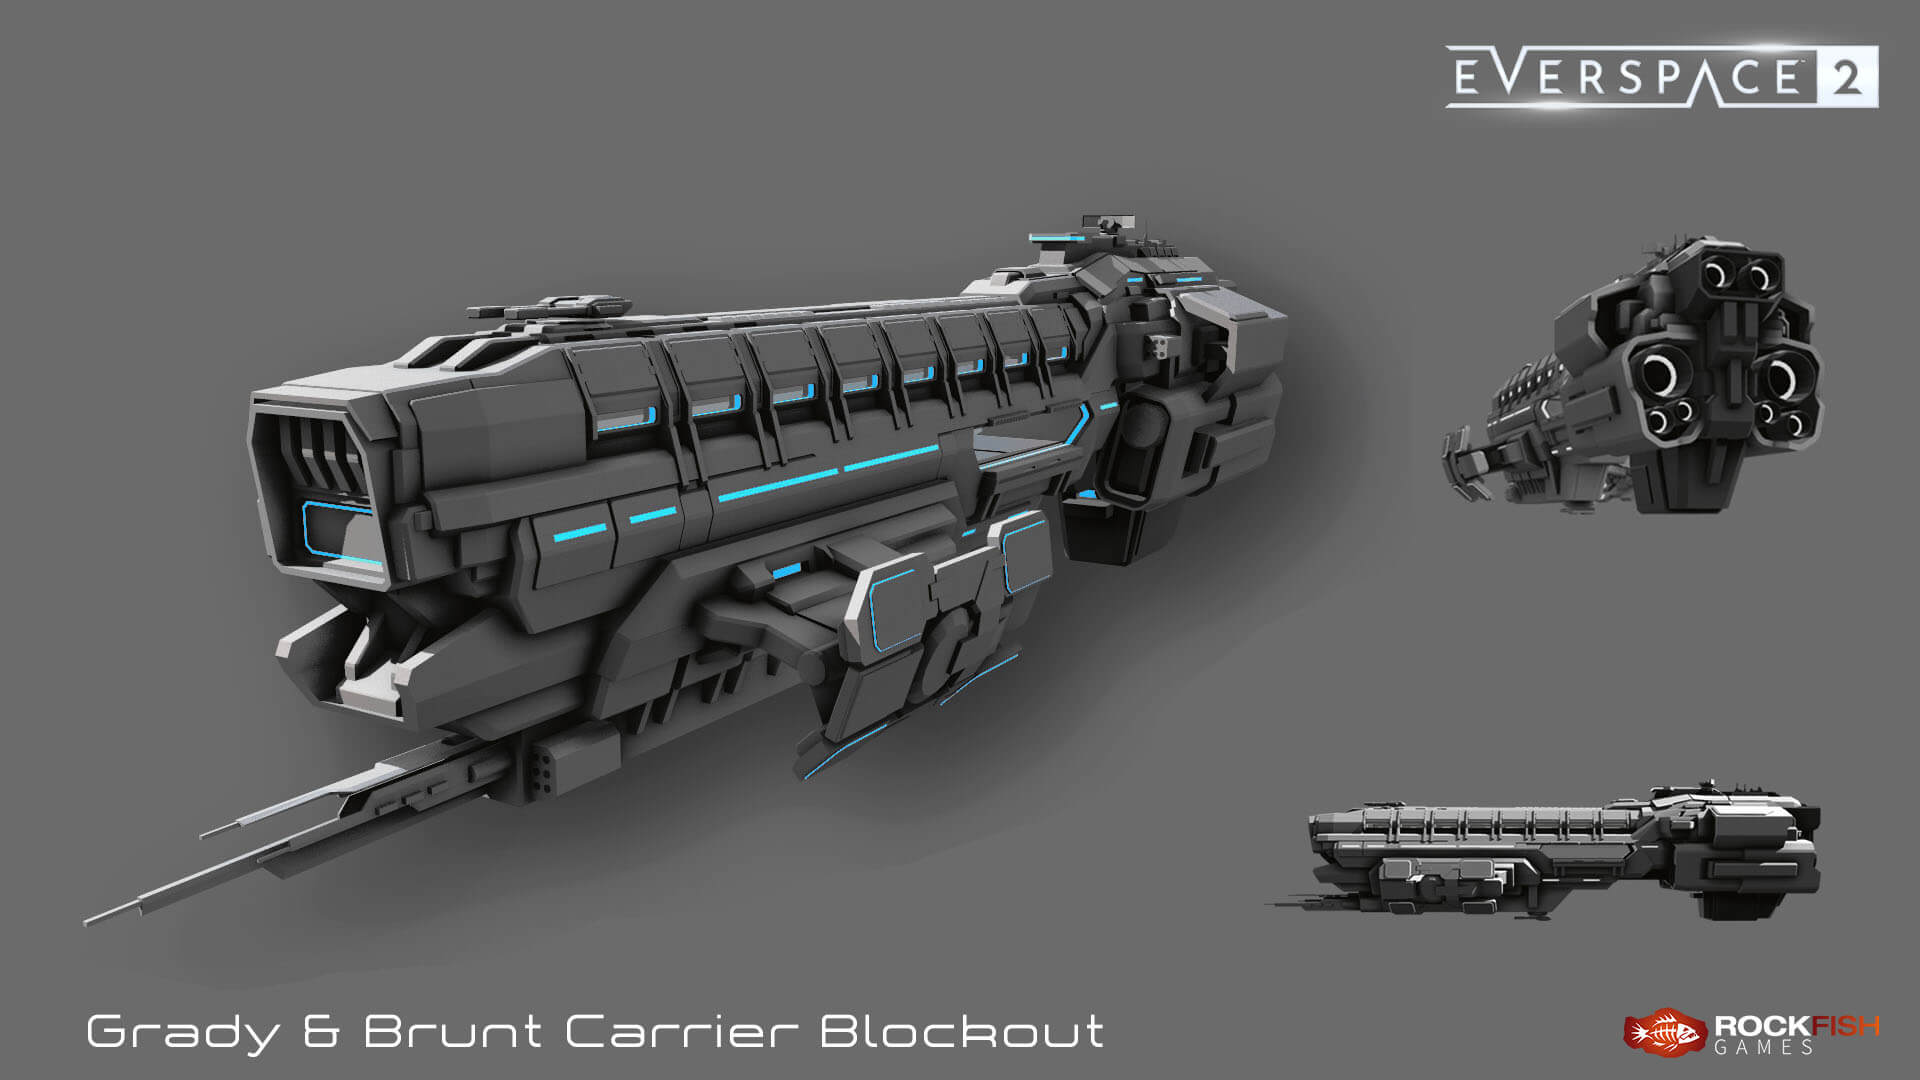 grady and brunt everspace 2 carrier blockout